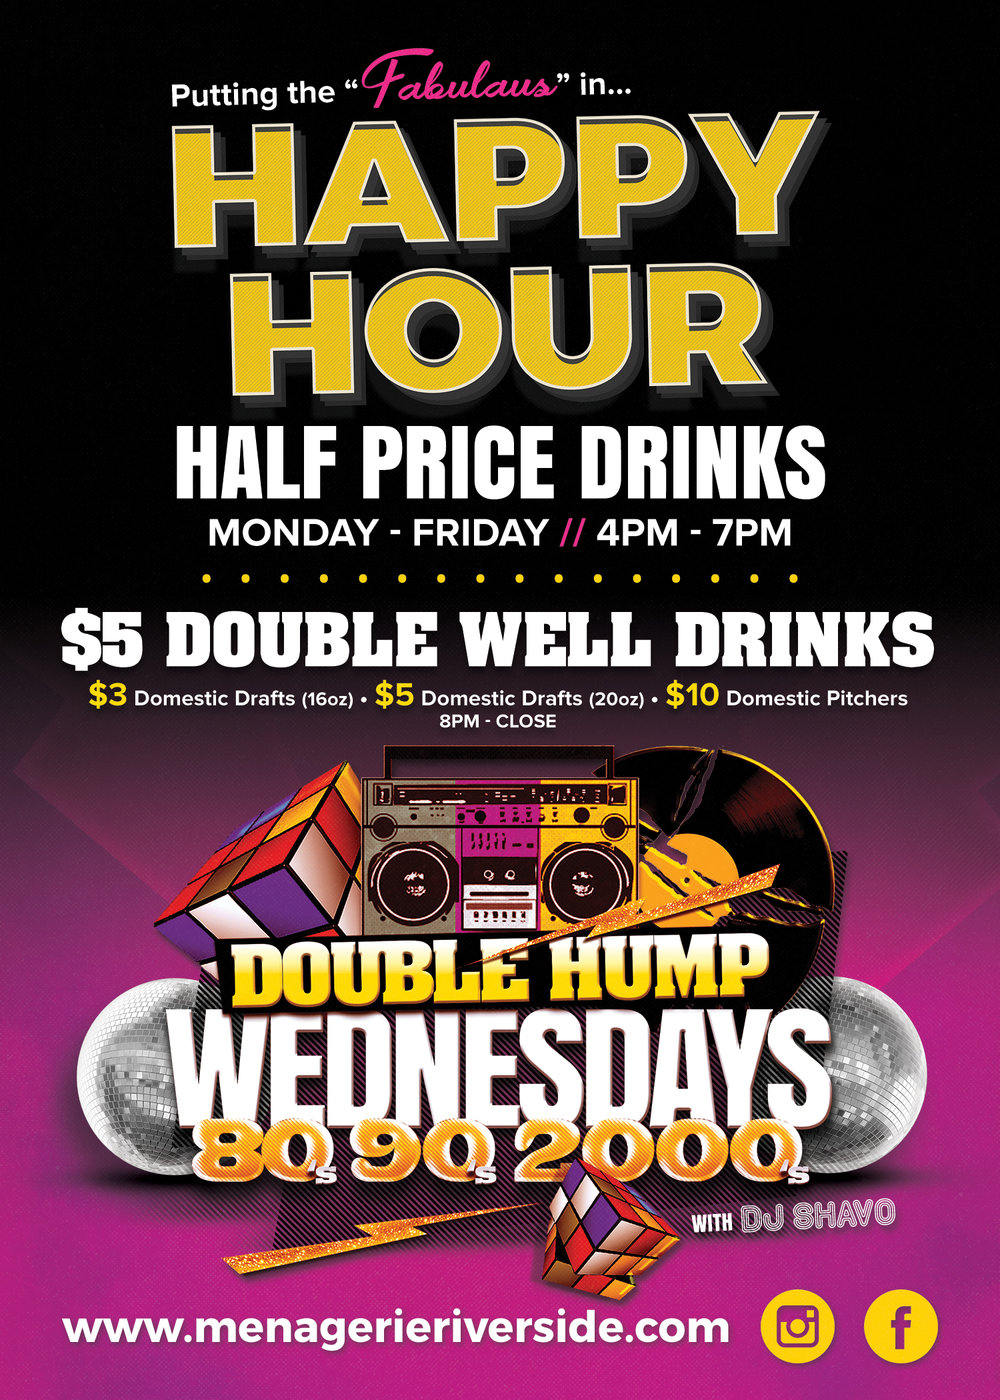 Double Hump Wednesdays Promo.jpg